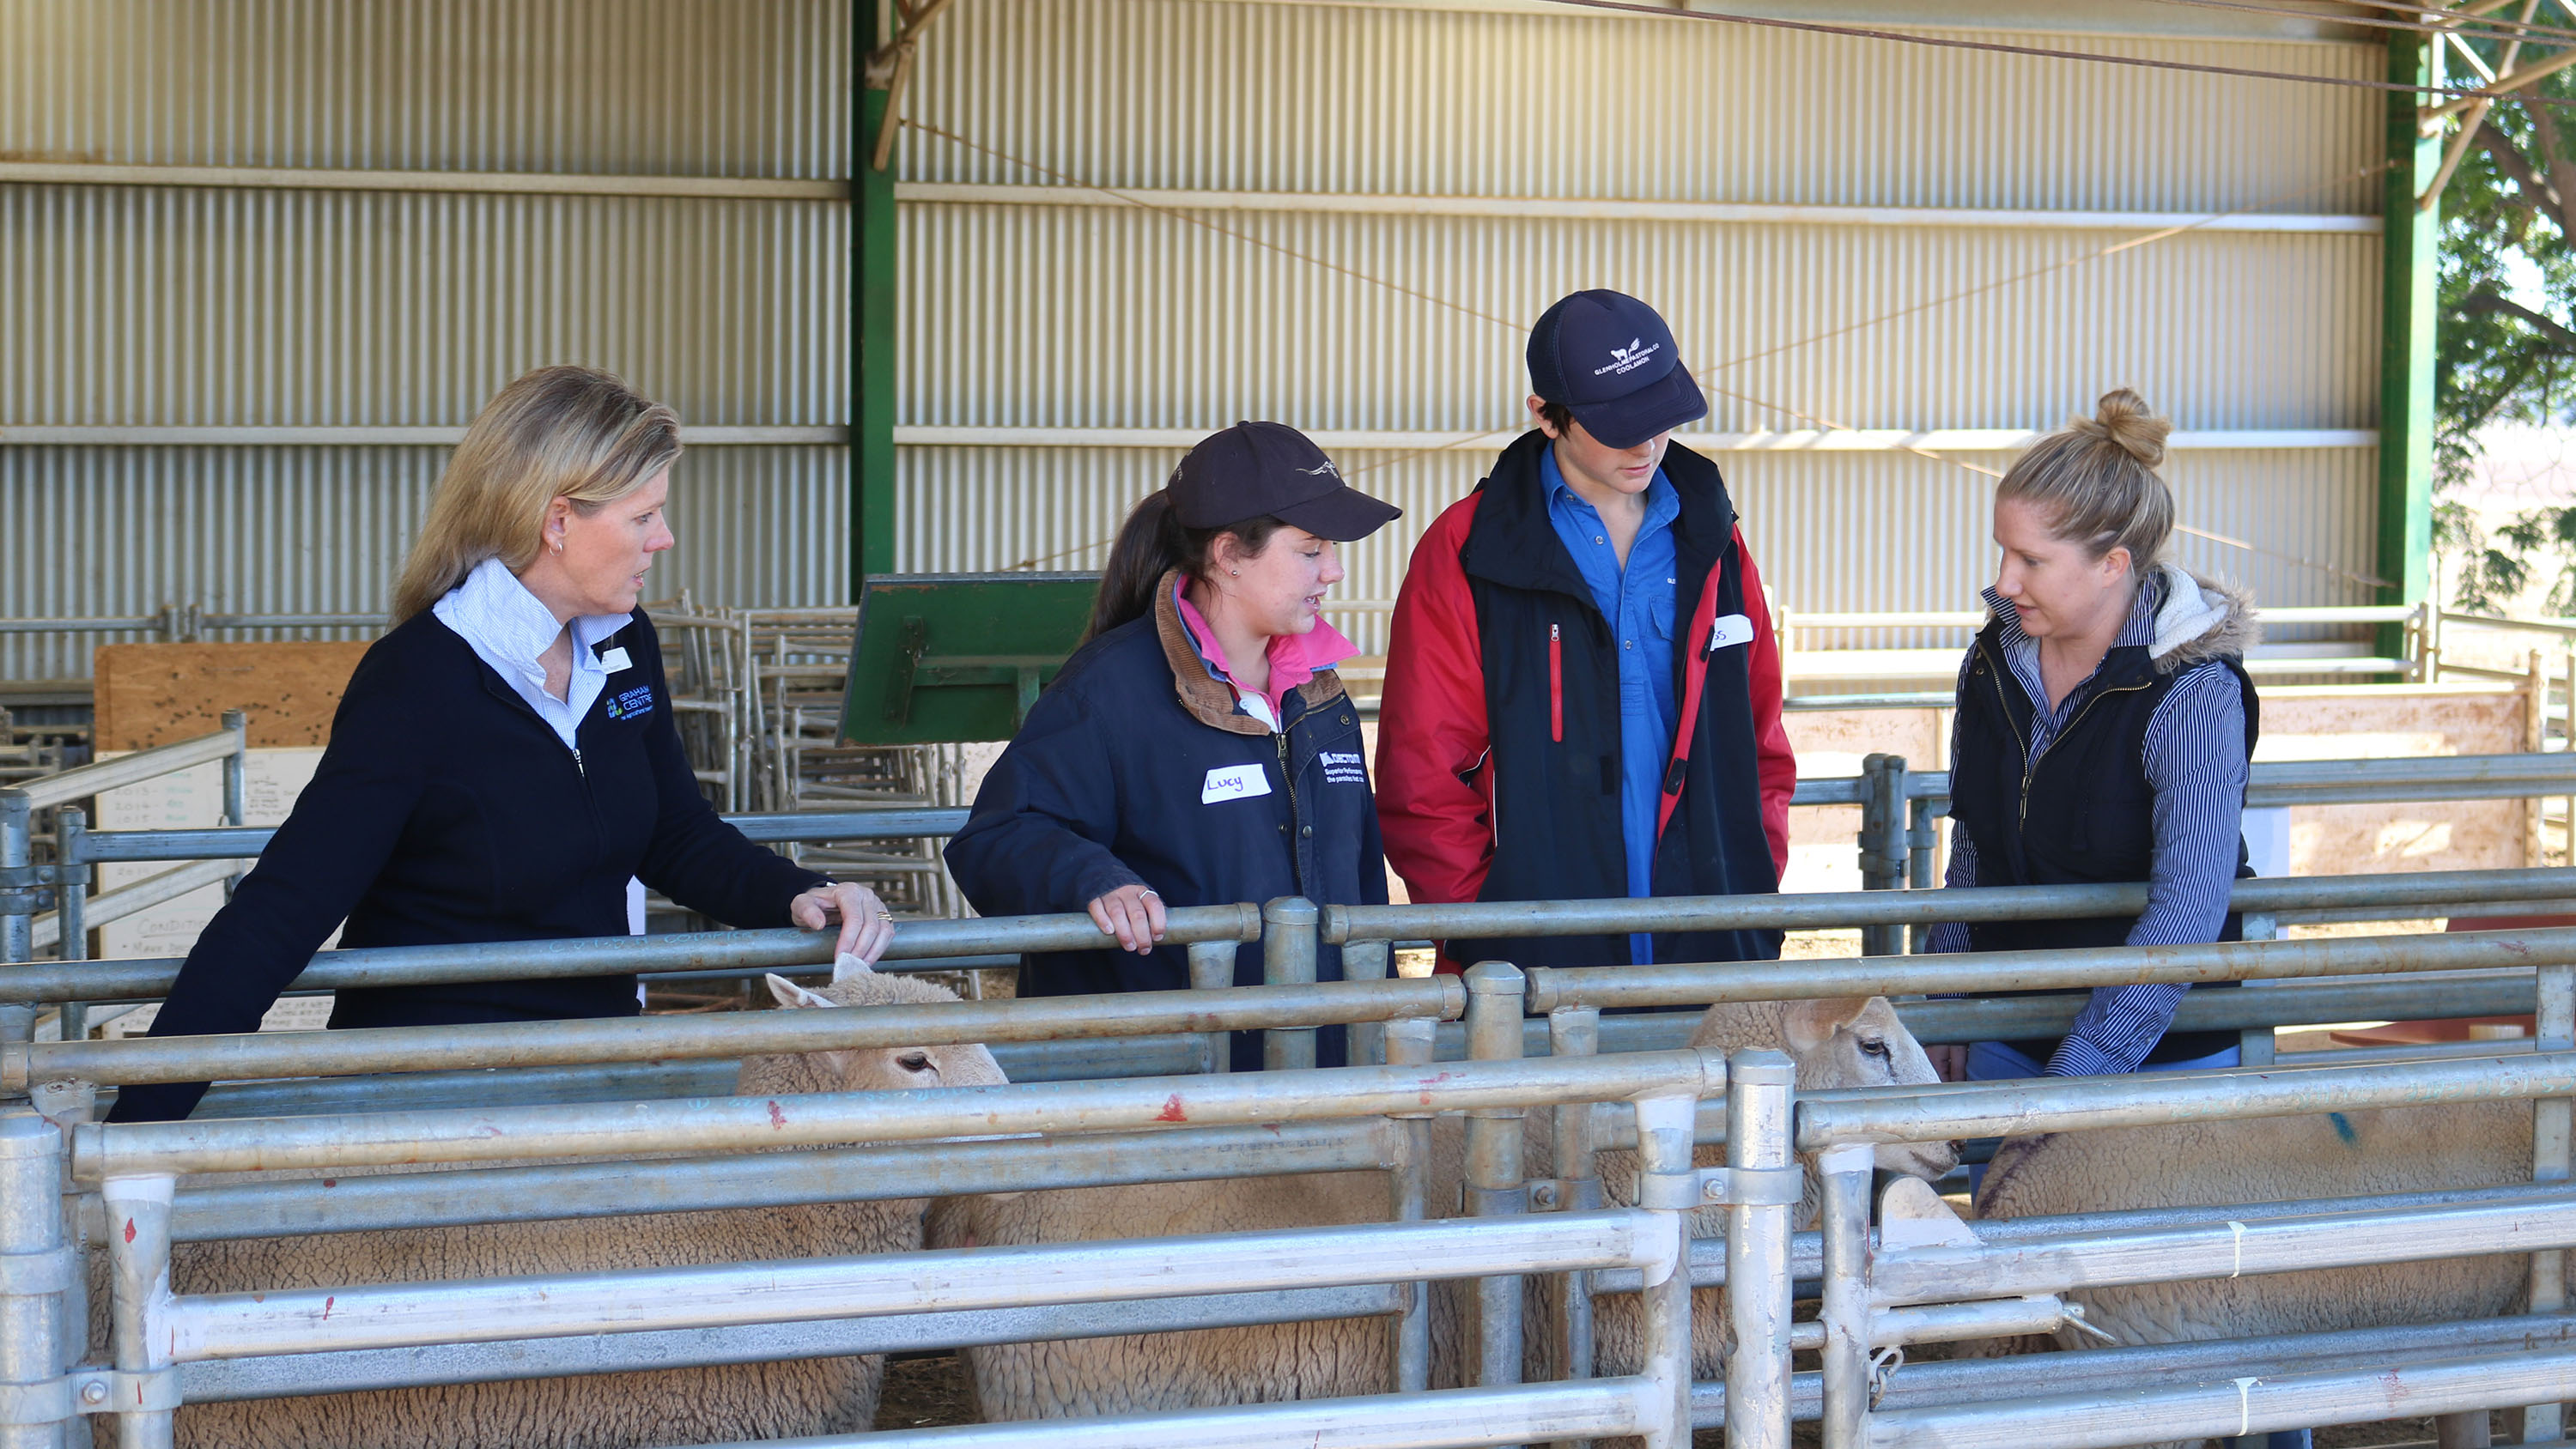 Toni Nugent, Graham Centre, Joss Cooper and Lucy Reardon from Mater Dei Catholic College and Emma Hand, Graham Centre